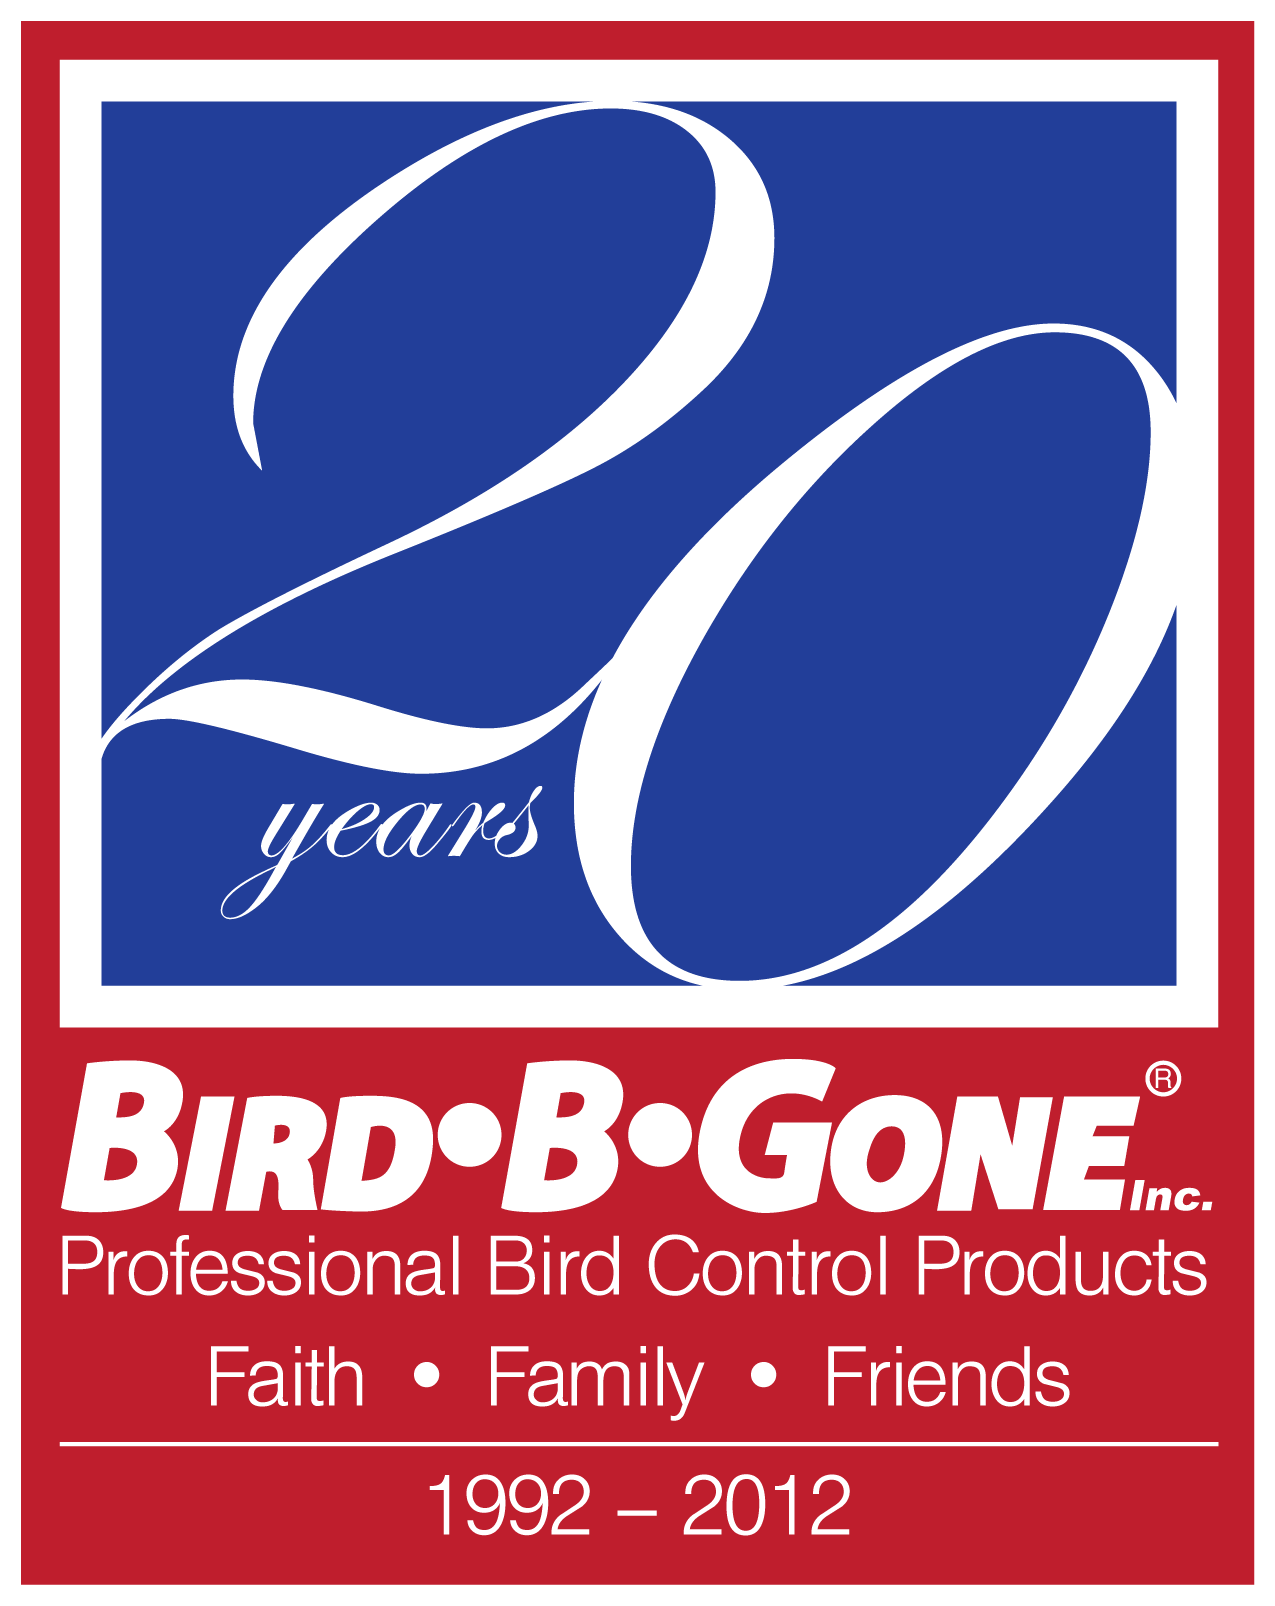 Bird-B-Gone, Inc. Celebrates 20th Anniversary